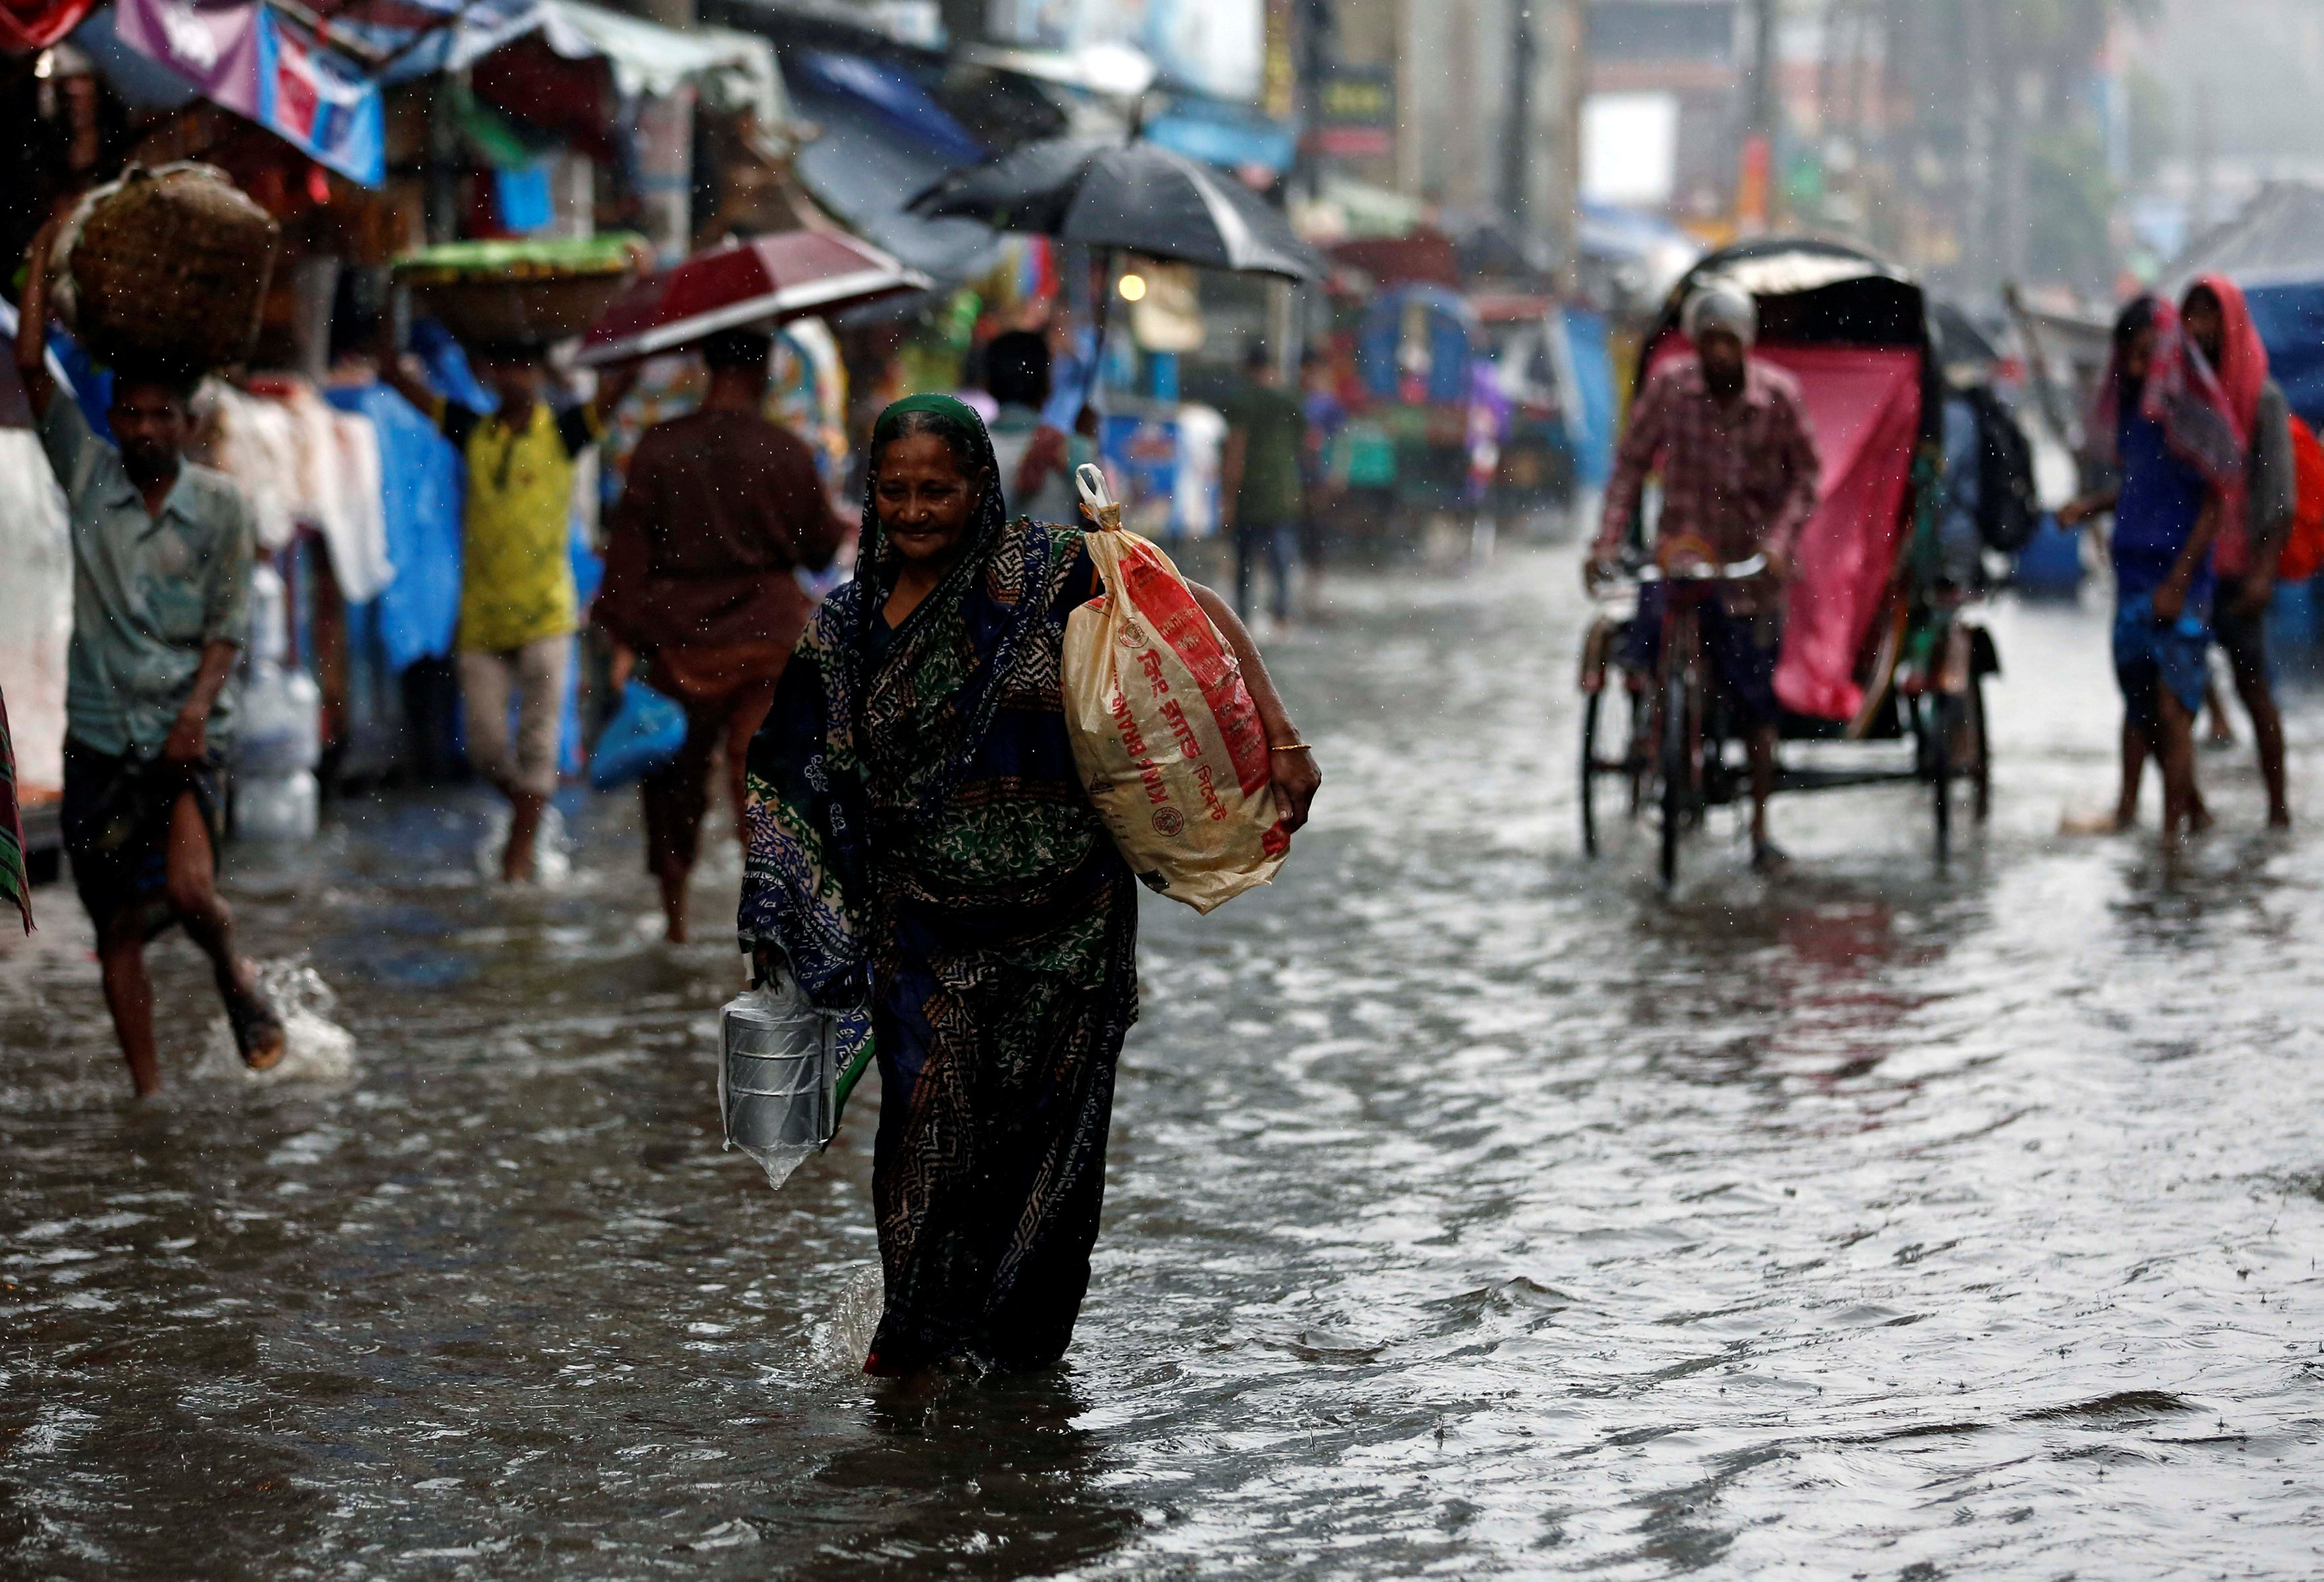 A woman with bags walks along a street as roads are flooded due to heavy rain in Dhaka, Bangladesh July 26, 2017. REUTERS/Mohammad Ponir Hossain